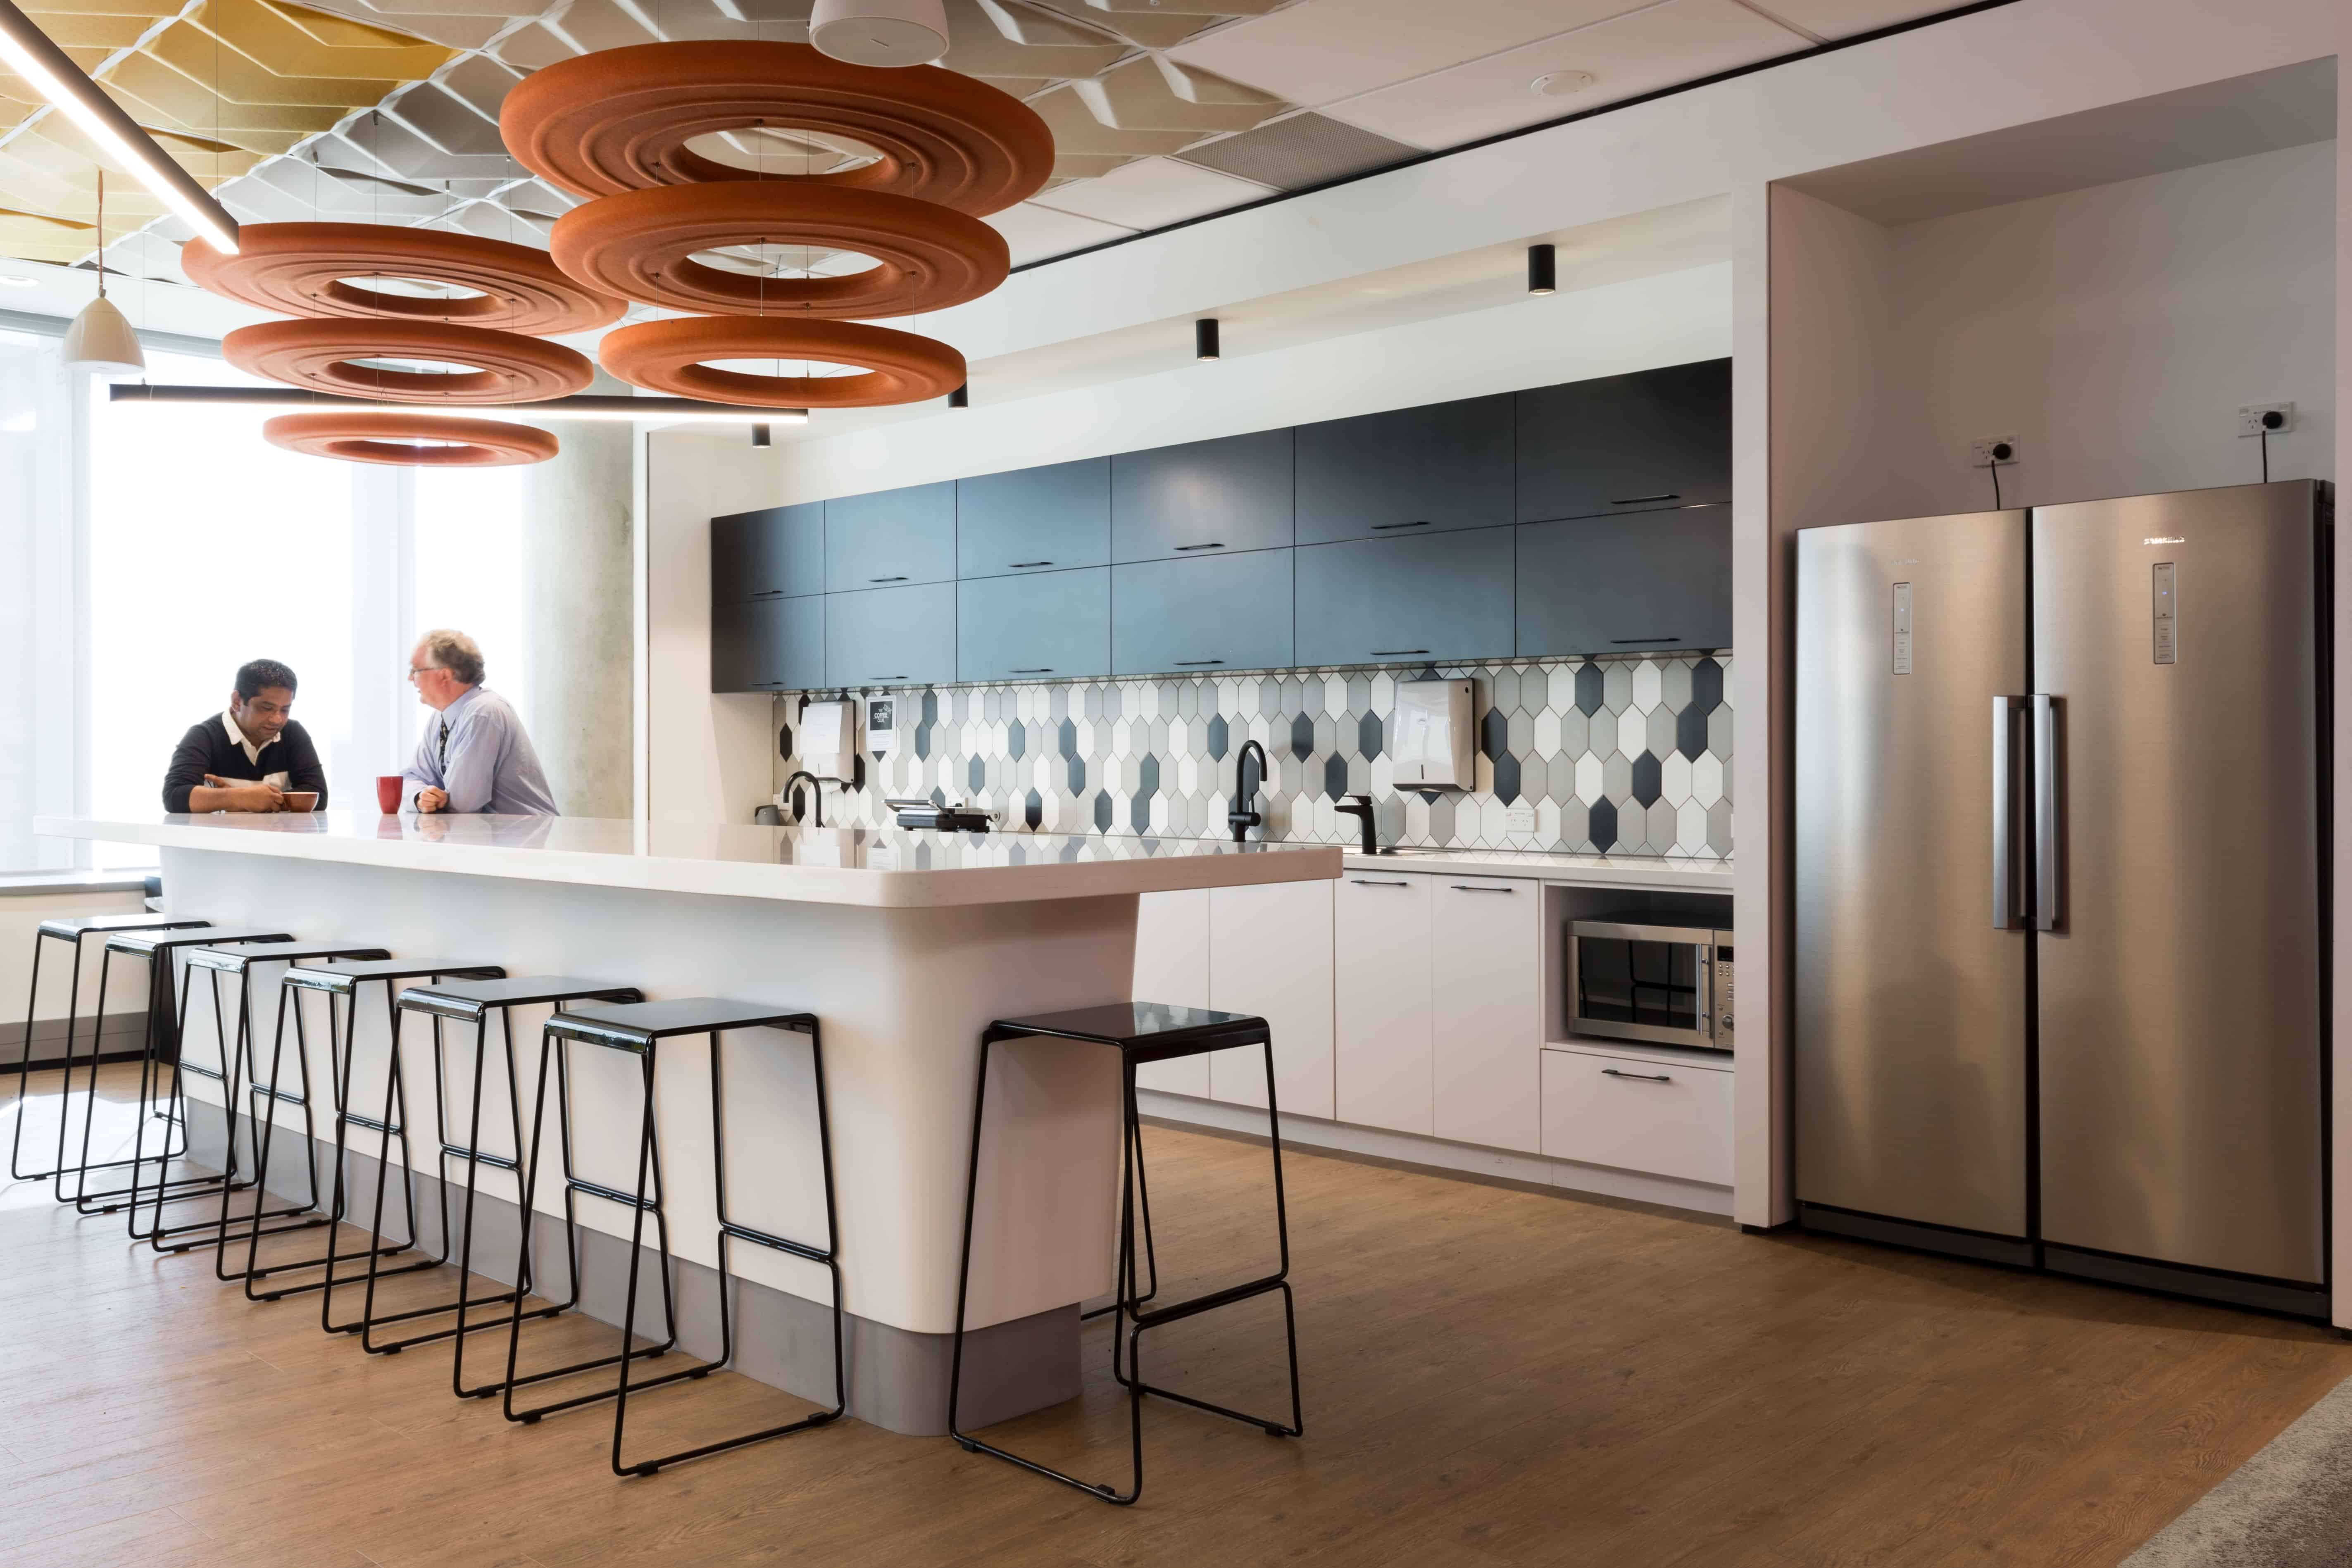 IBM office in Auckland workplace kitchen with people talking and red spiral art hanging from ceiling